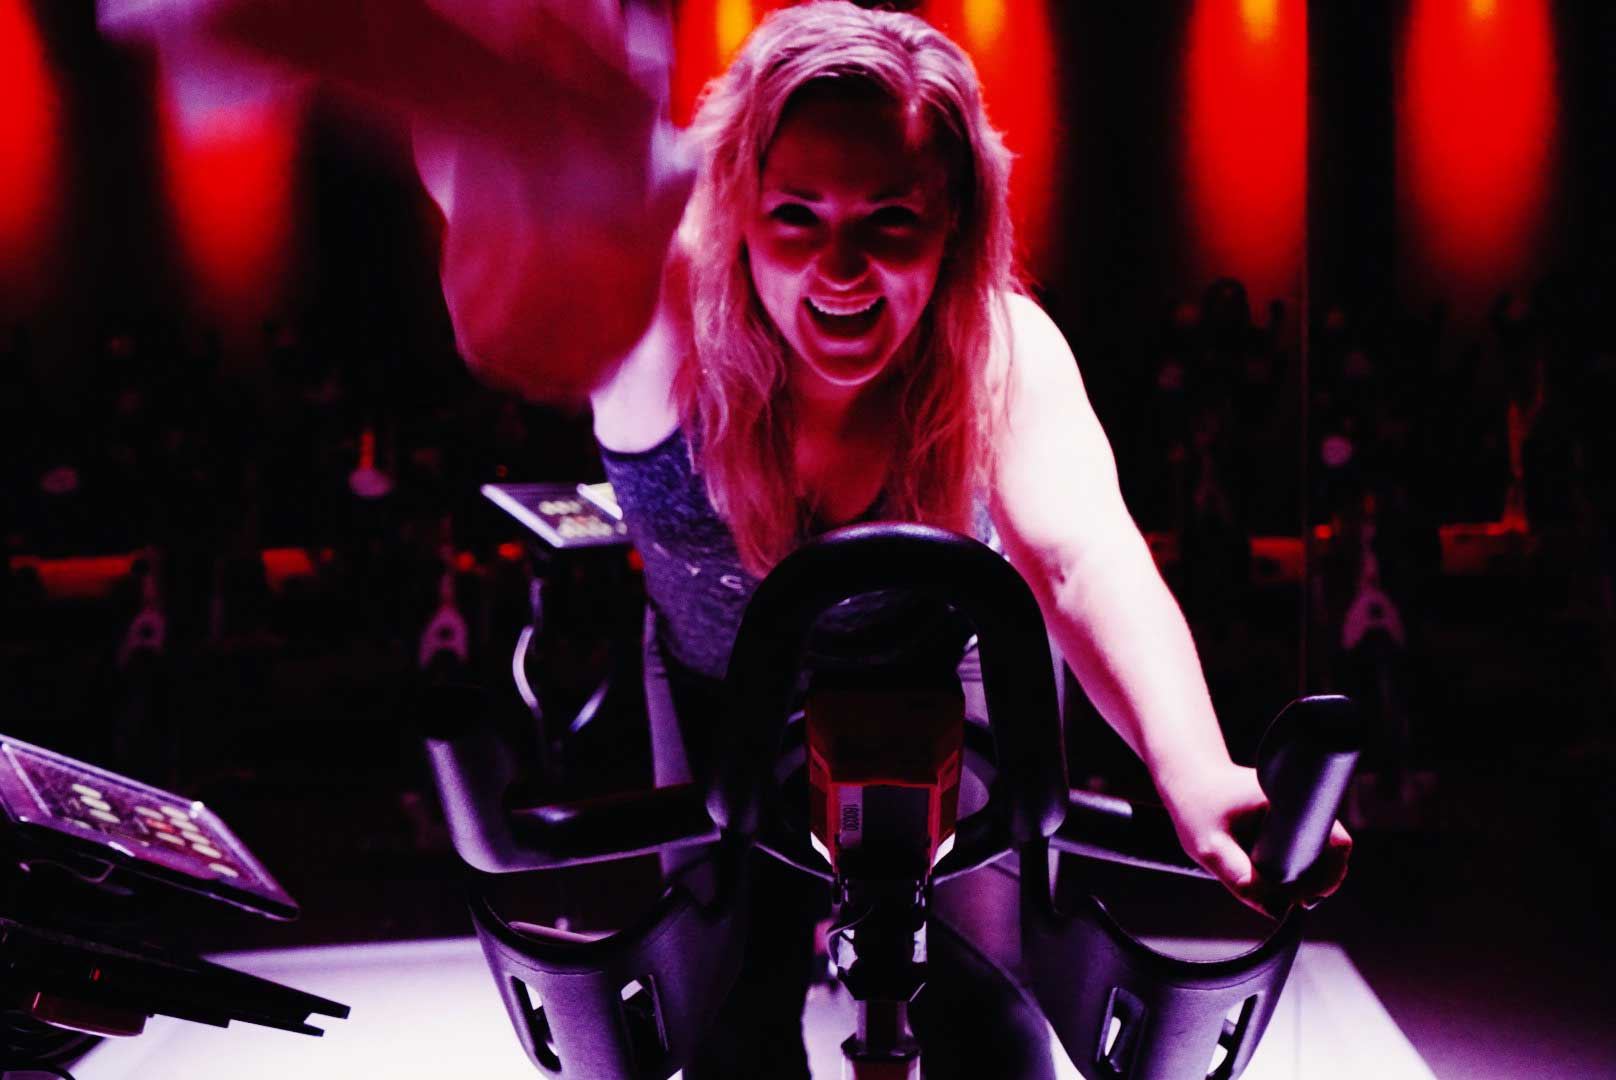 Woman takes Cyclebar class to get in shape for your wedding